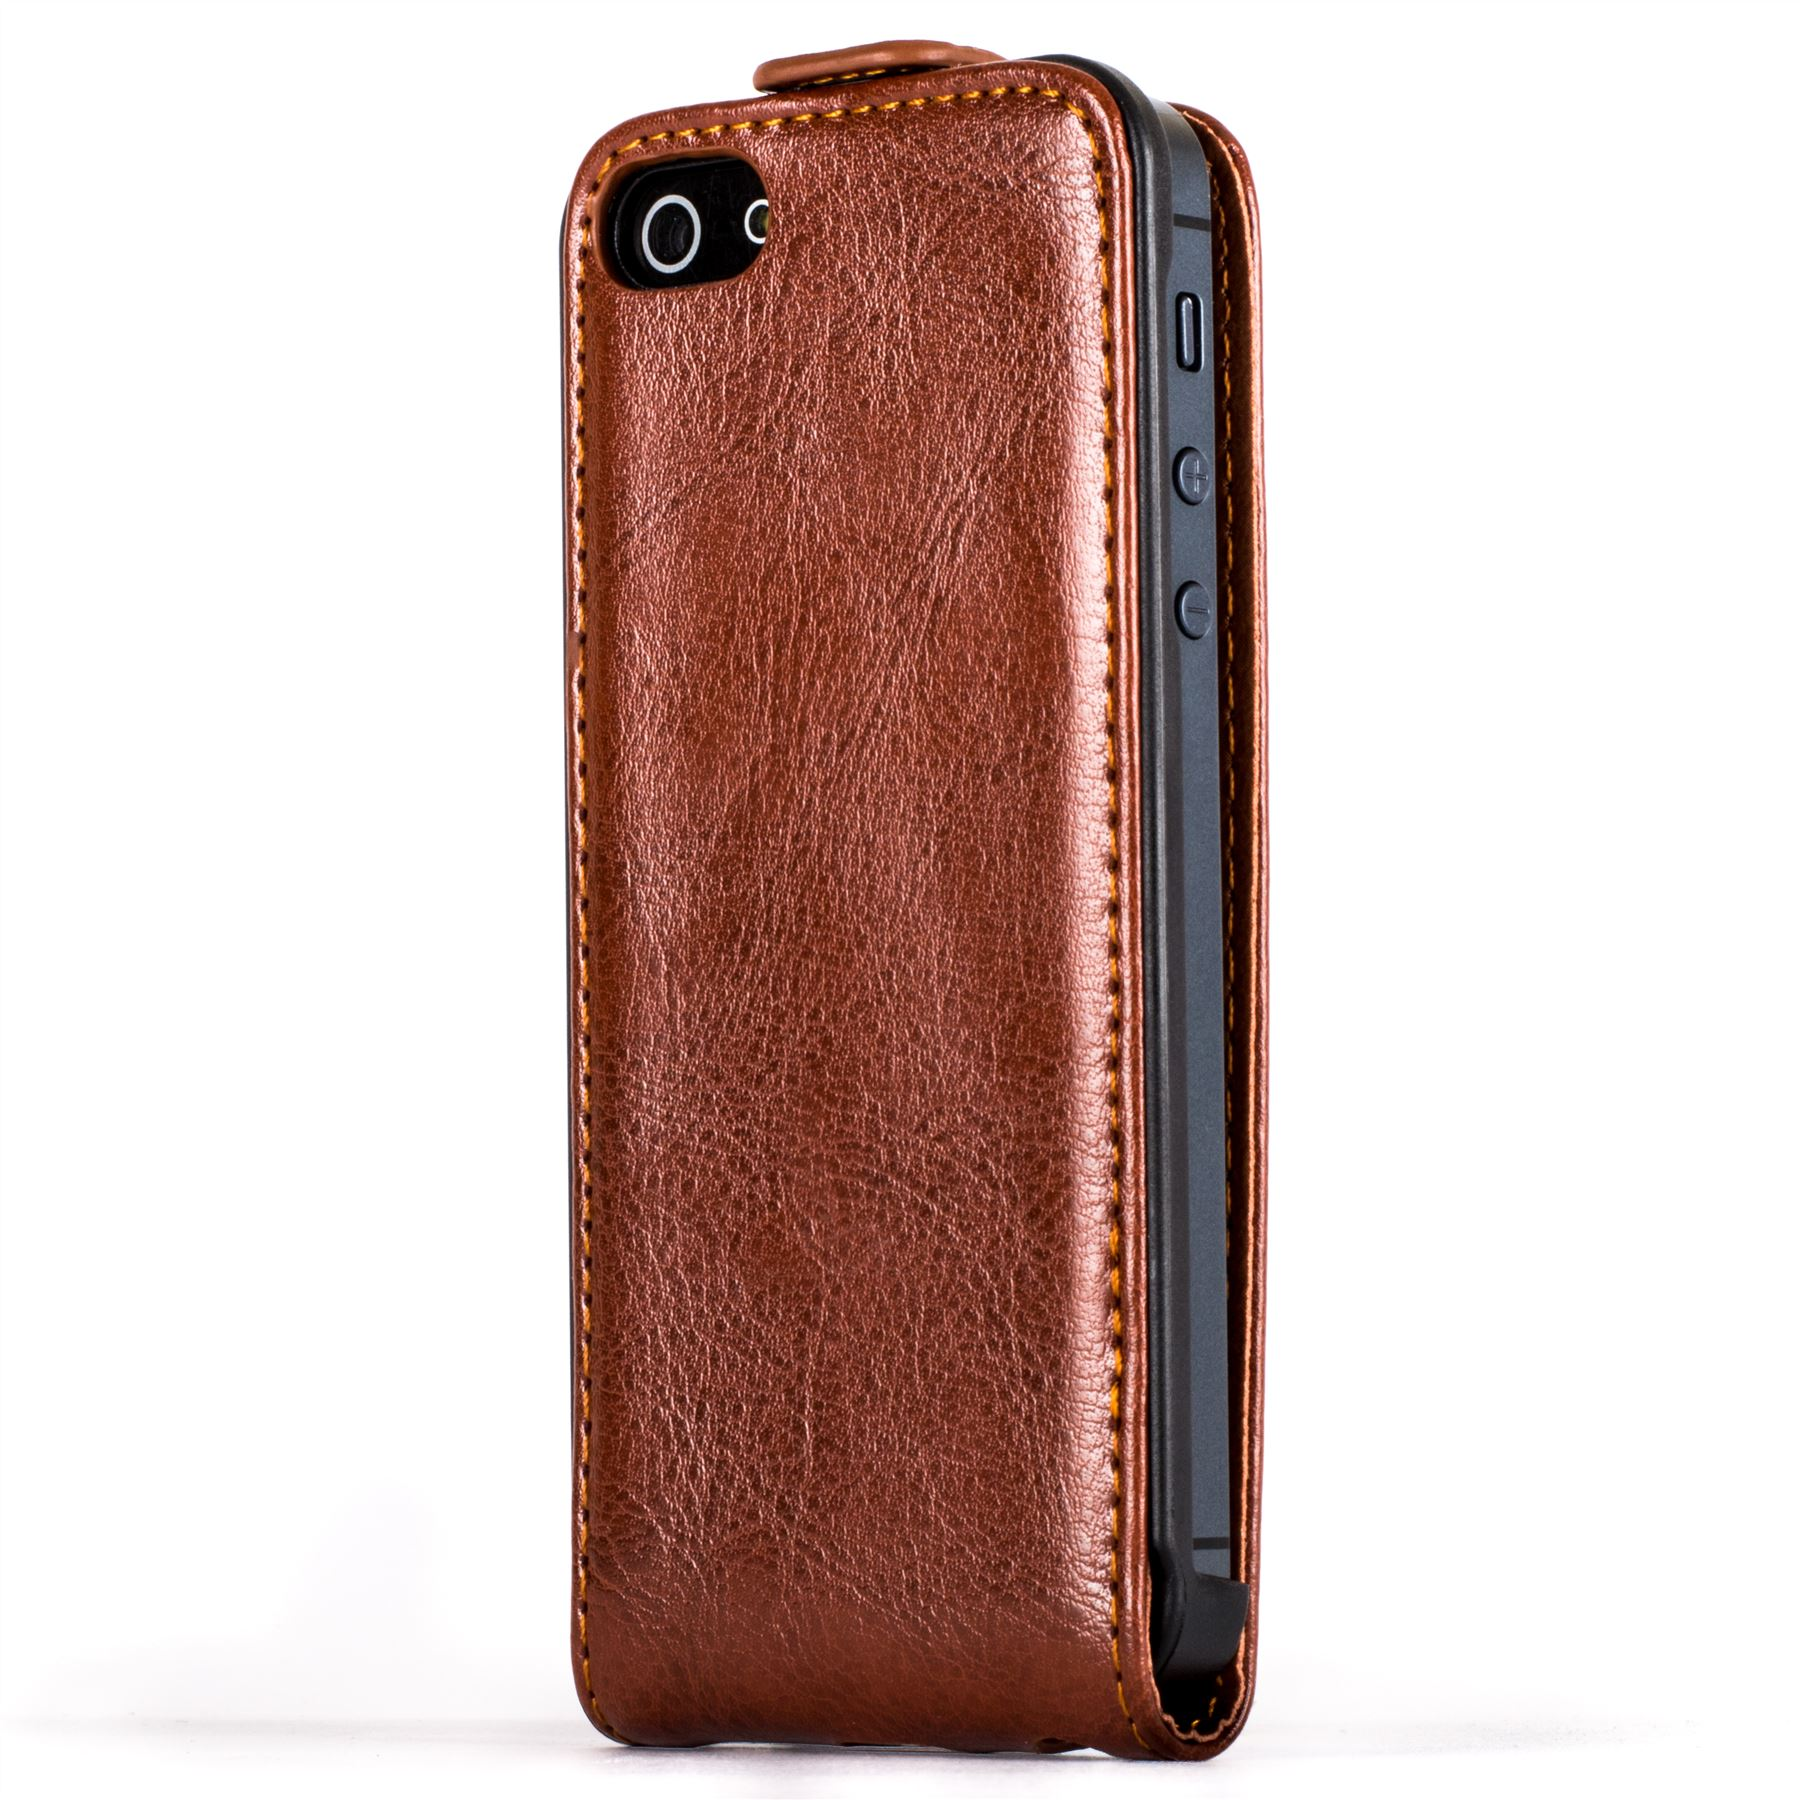 snakehive apple iphone 5 5s premium quality handy leather flip top case cover ebay. Black Bedroom Furniture Sets. Home Design Ideas